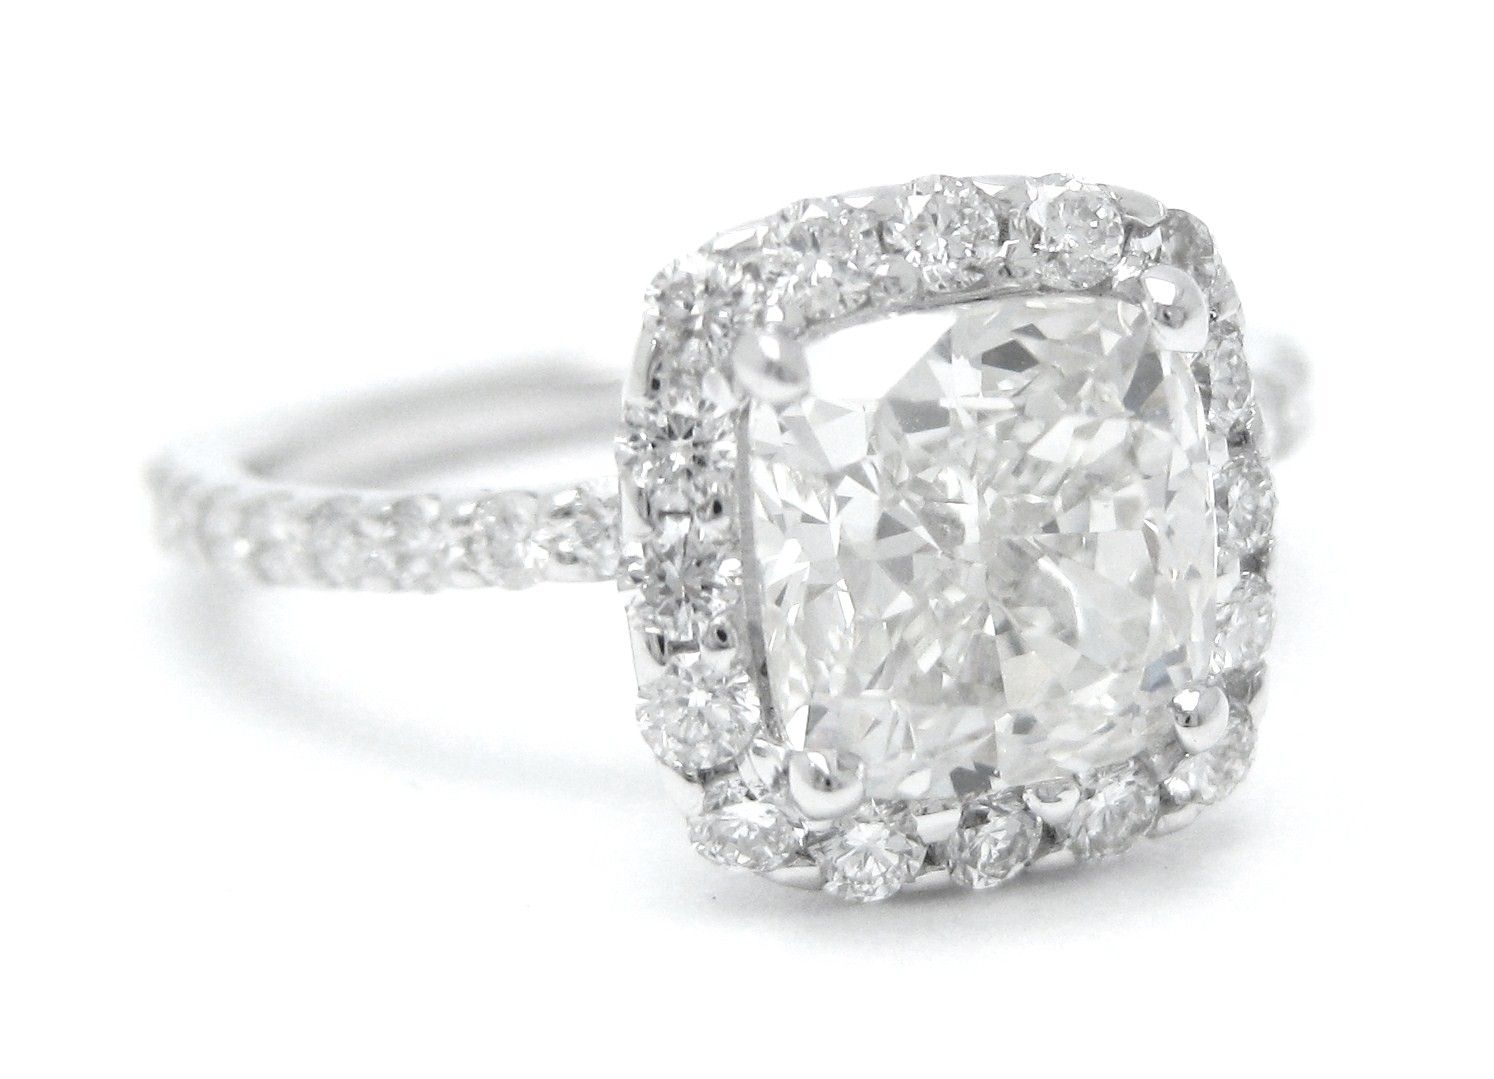 Exquisite wedding rings: Harry winston engagement ring prices 2010